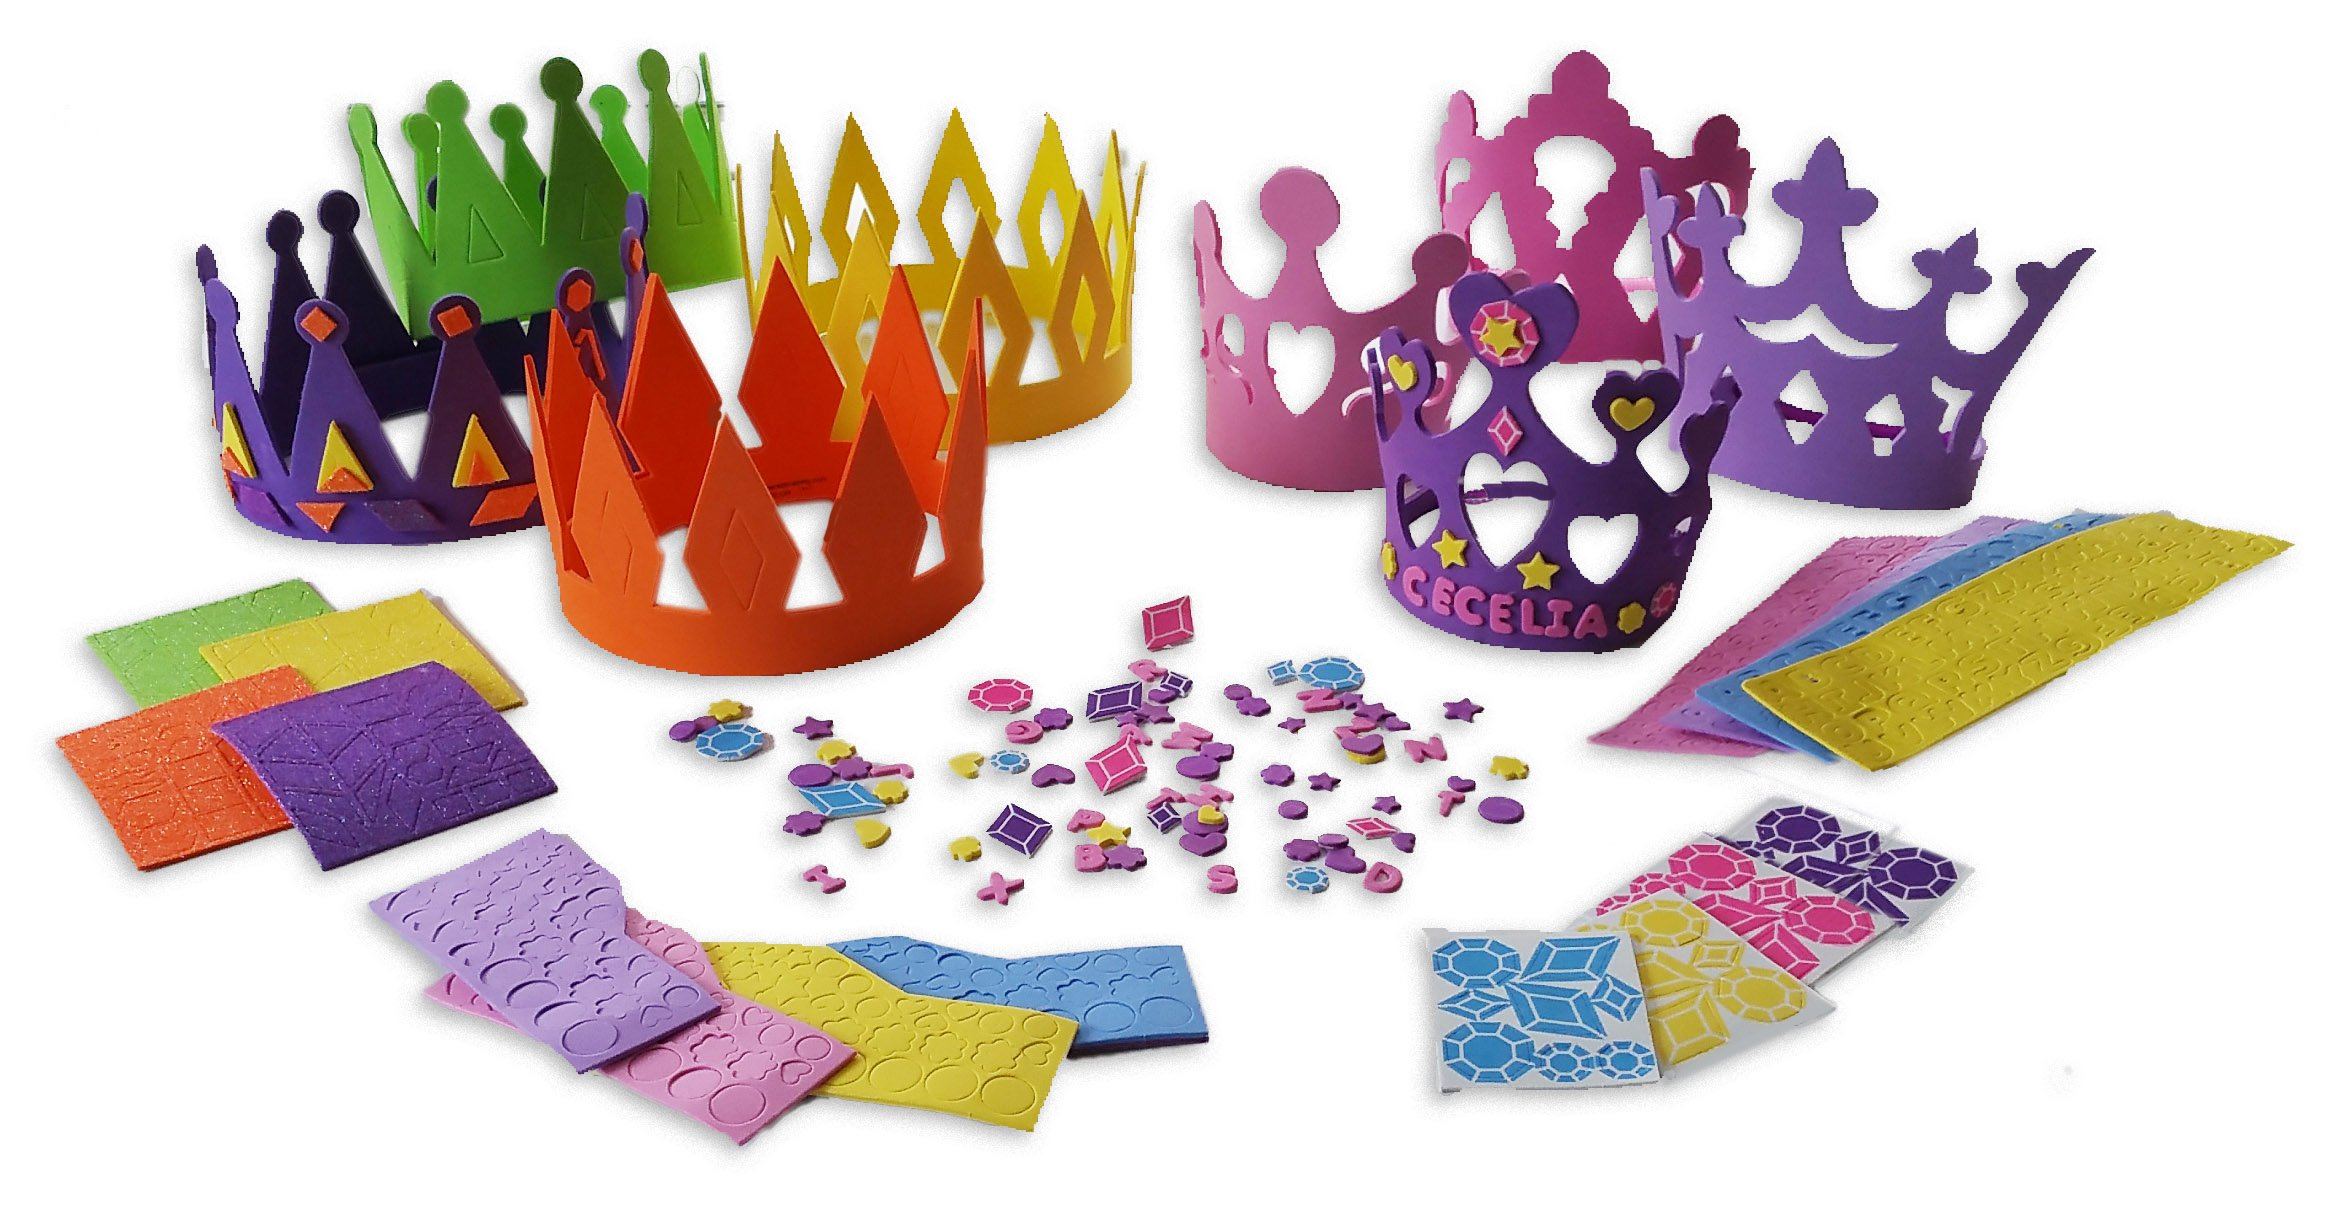 4 Princess Tiara Craft Kits + 4 Prince King Crown Foam Craft Kits - Great fun for kids birthday party